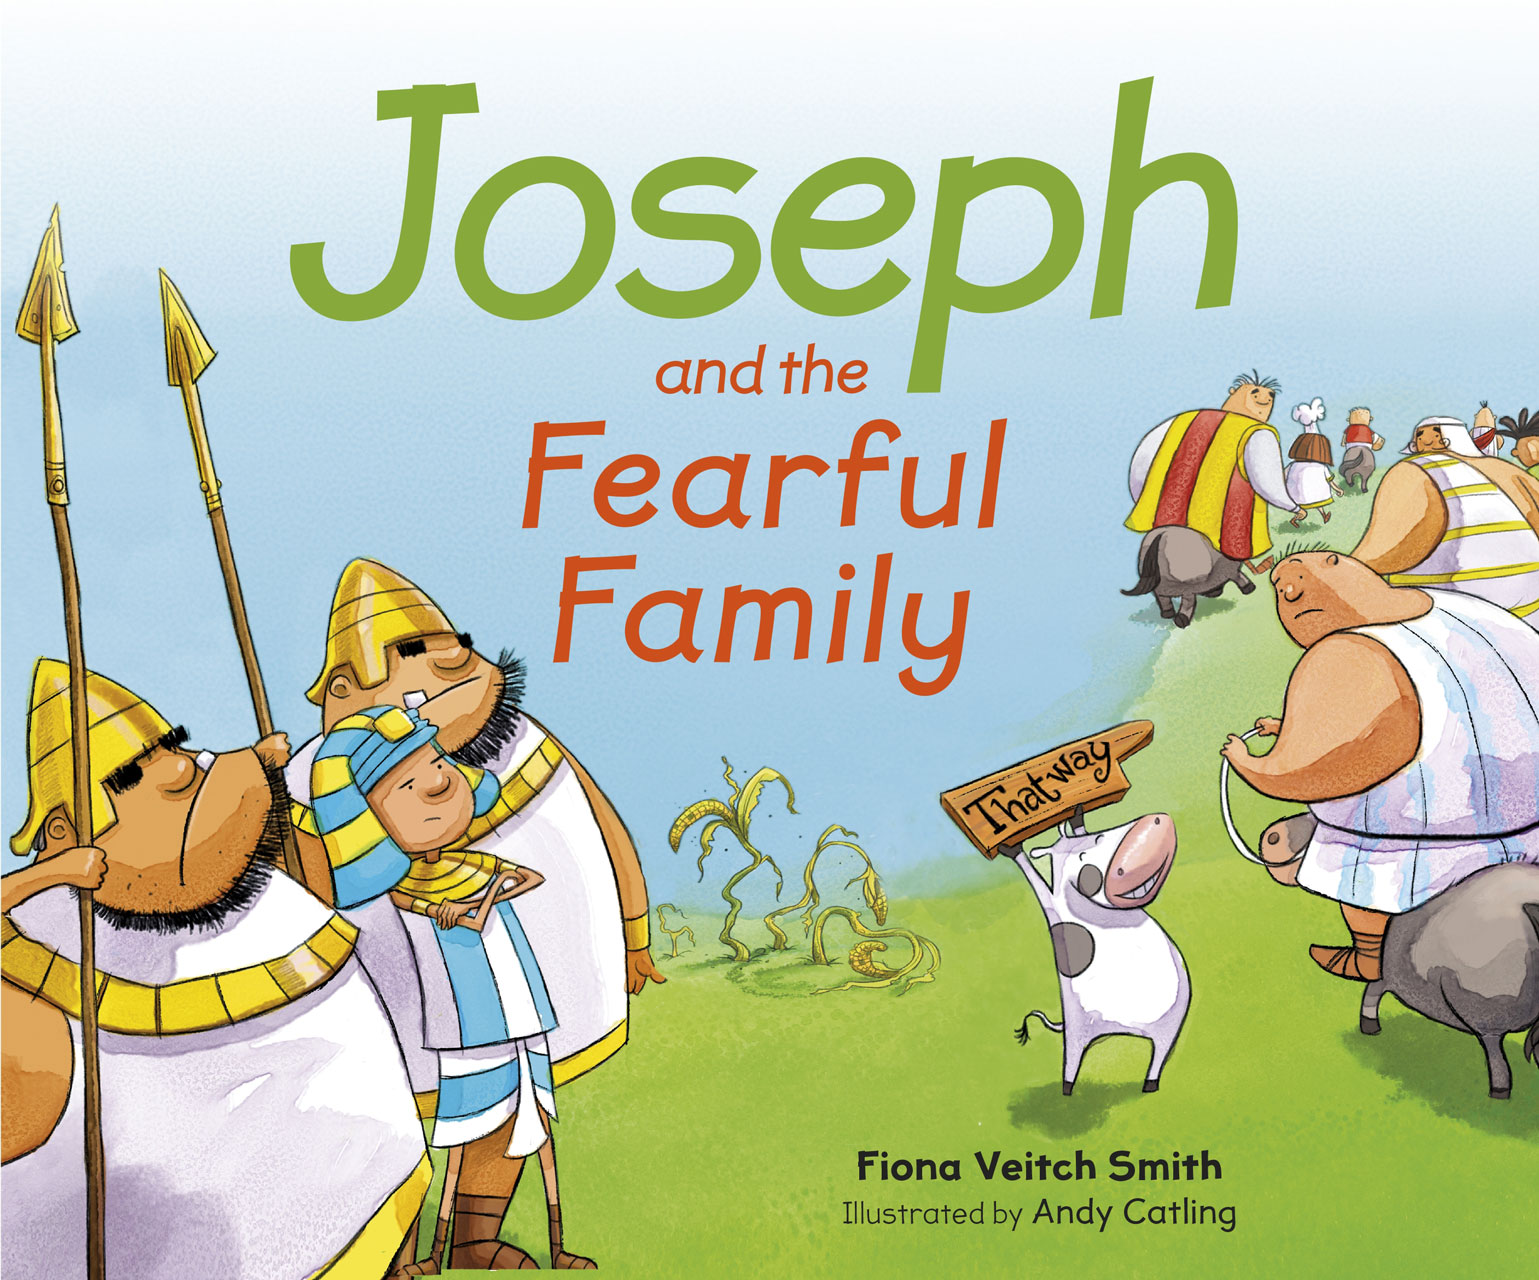 Joseph and the Fearful Family